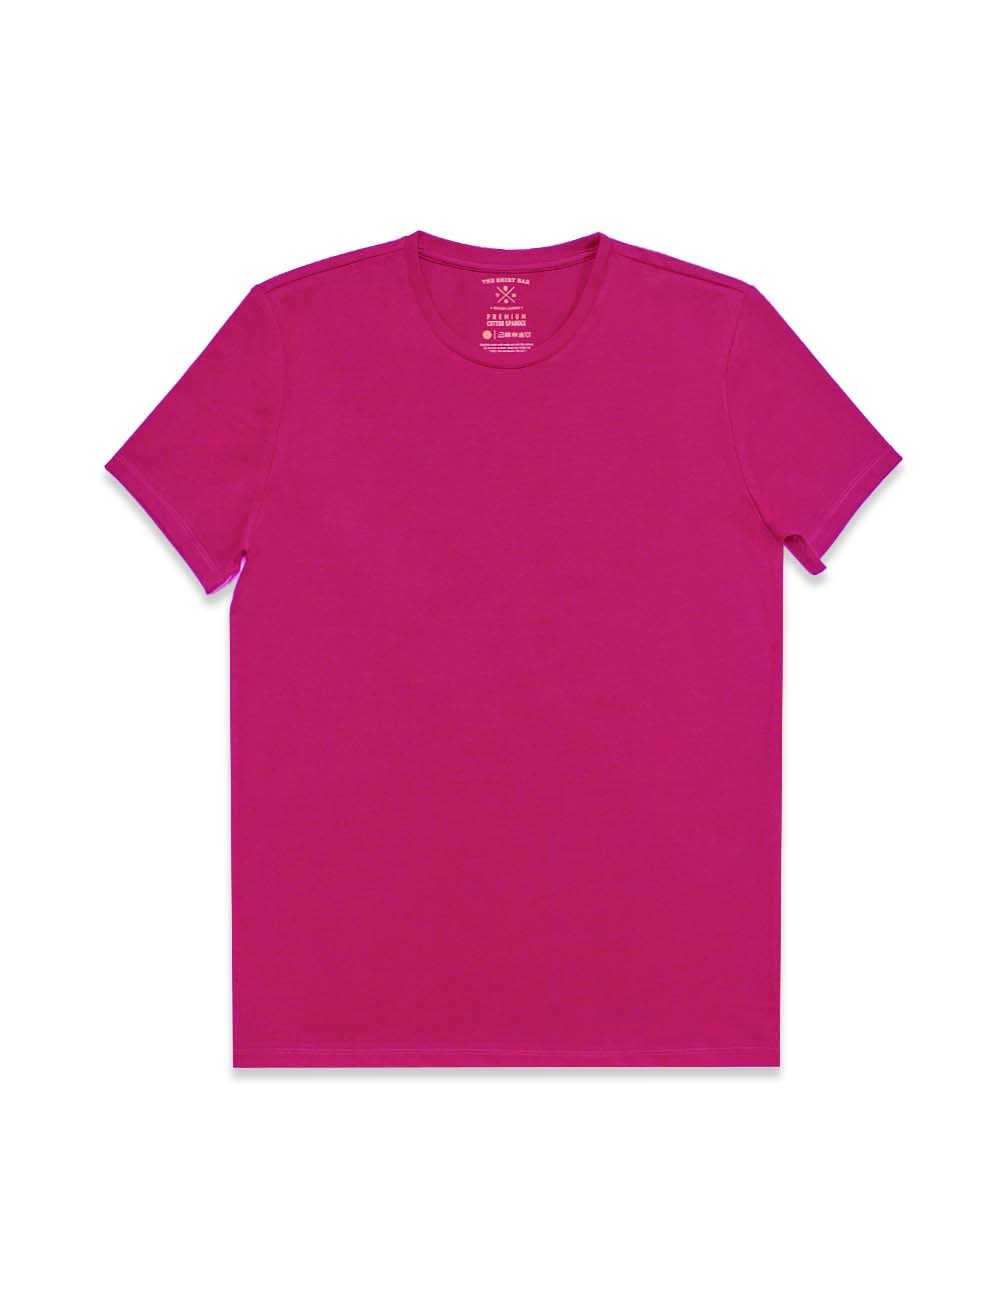 Slim Fit Pink Premium Cotton Stretch Crew Neck T-Shirt TS1A6.3